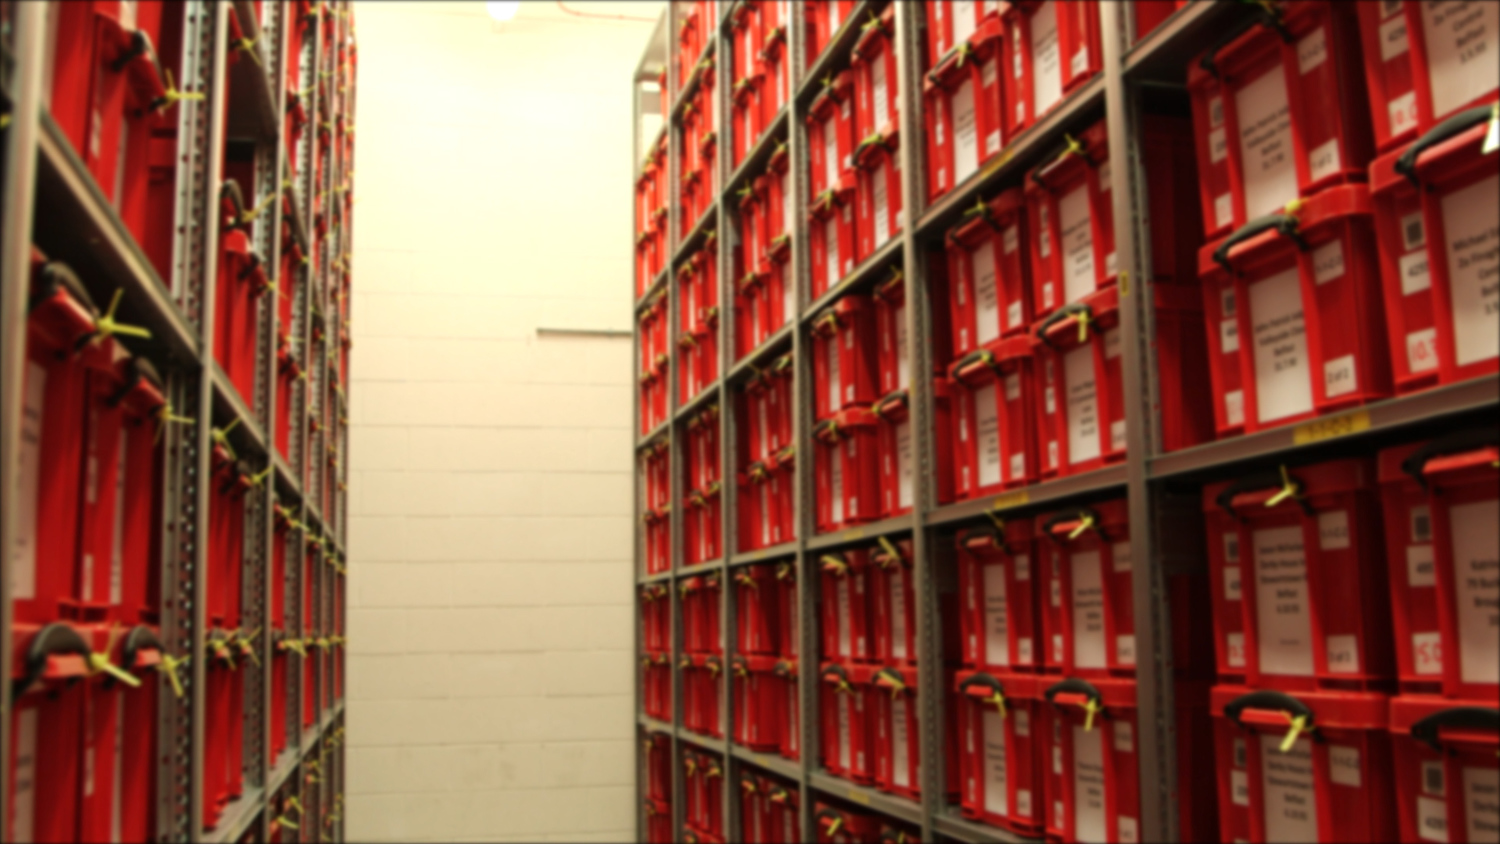 The PSNI's Murder Archive contains files on every murder that has occurred since 1968